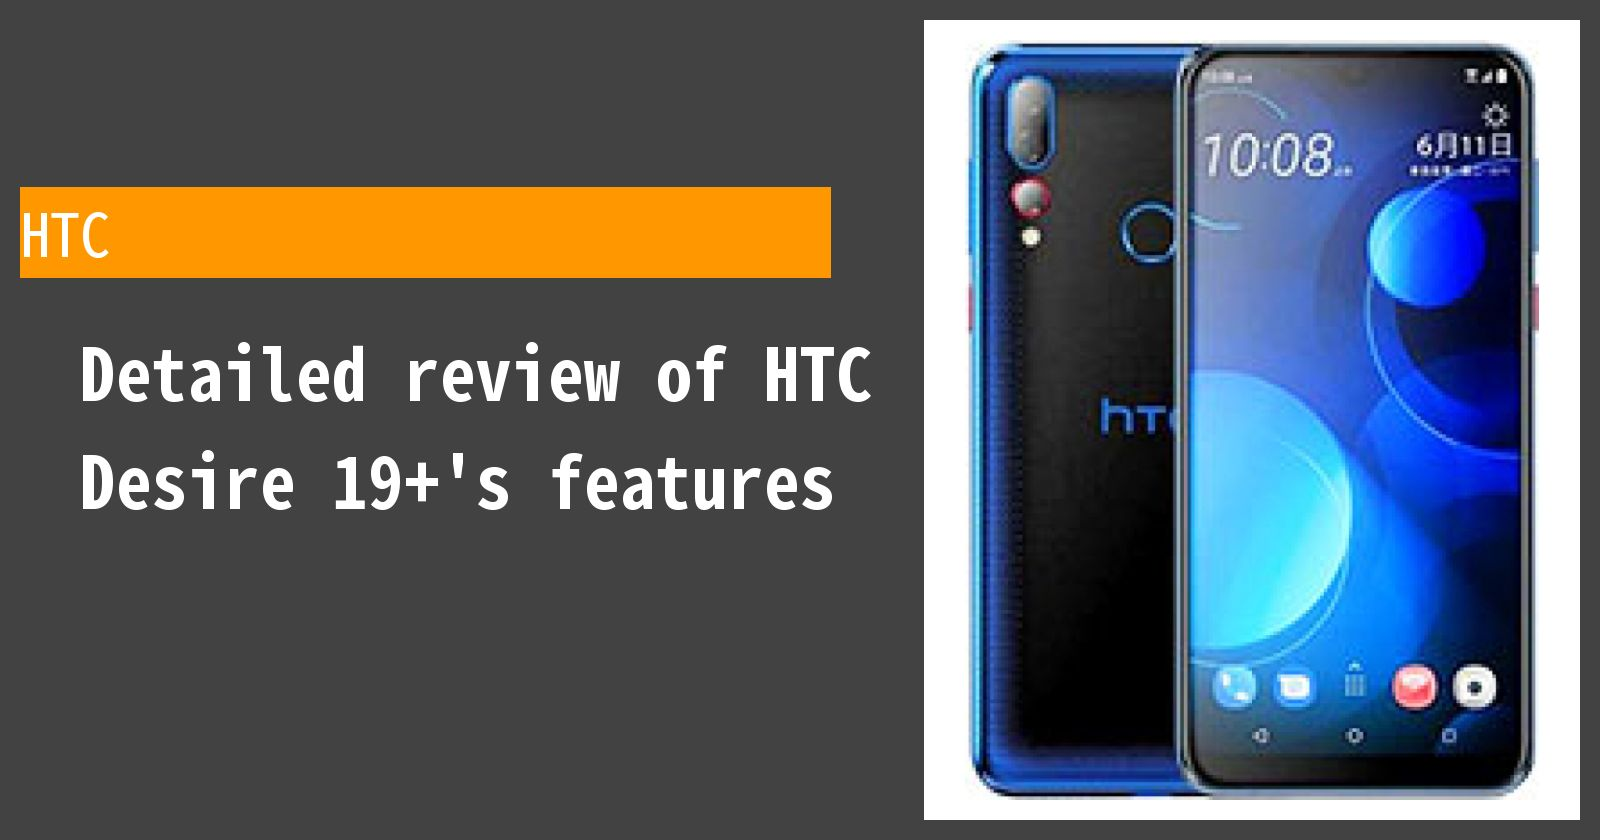 Detailed review of HTC Desire 19+'s features